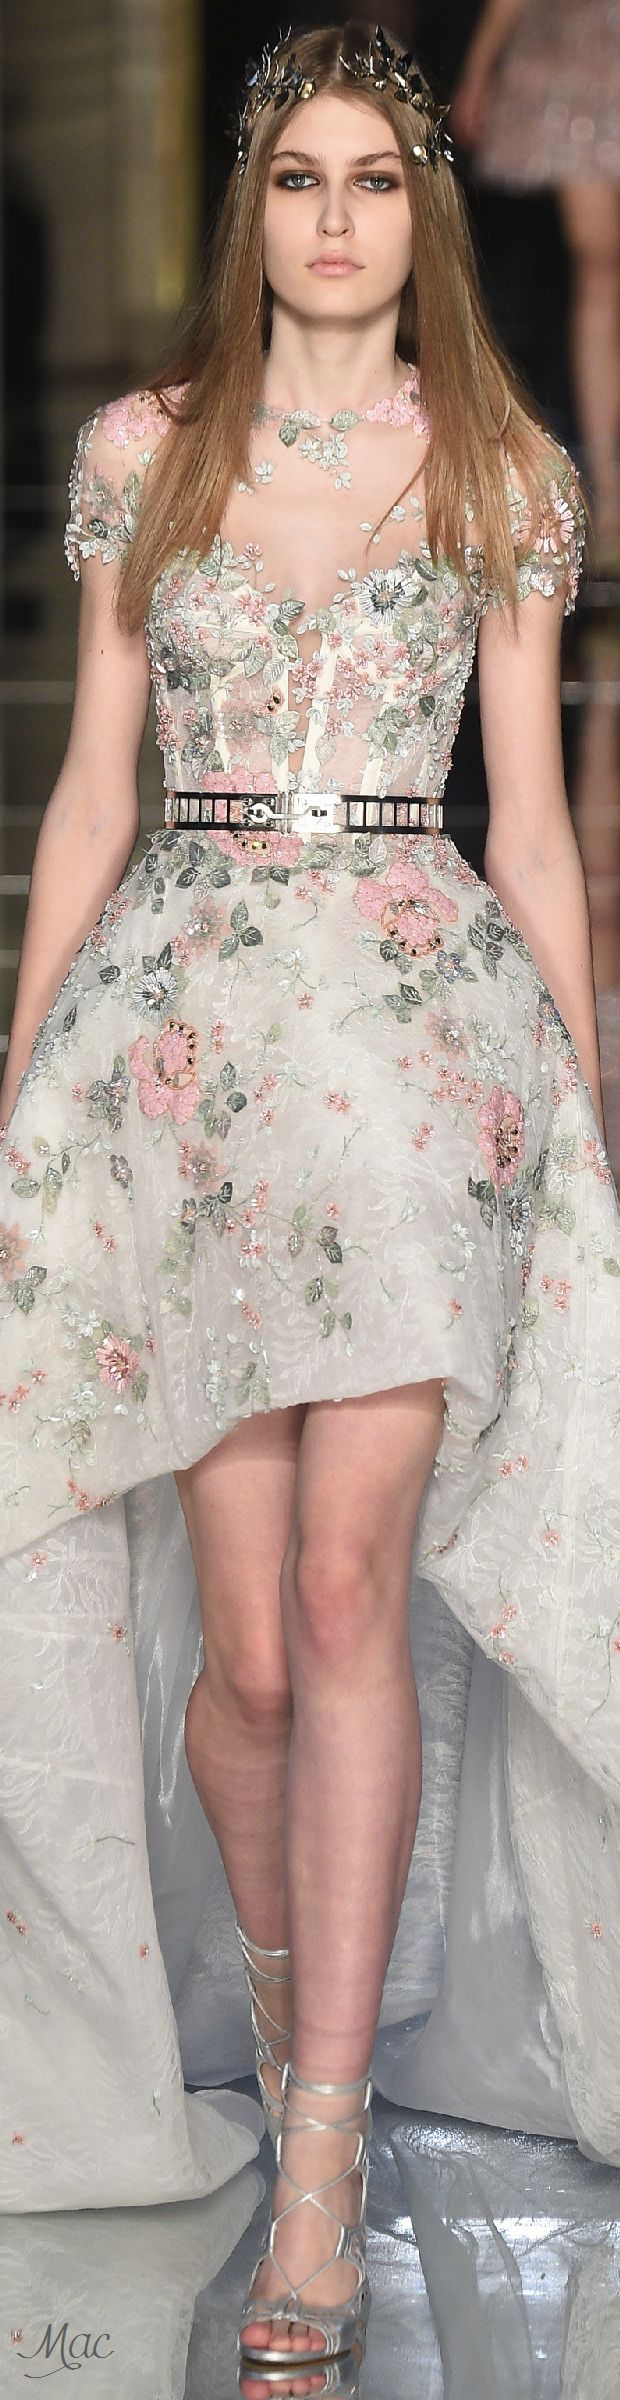 Zuhair Murad Spring 2016 Couture https://poshatplay.wordpress.com/2016/05/20/flirty-floral-dresses-perfect-for-springtime-fun/